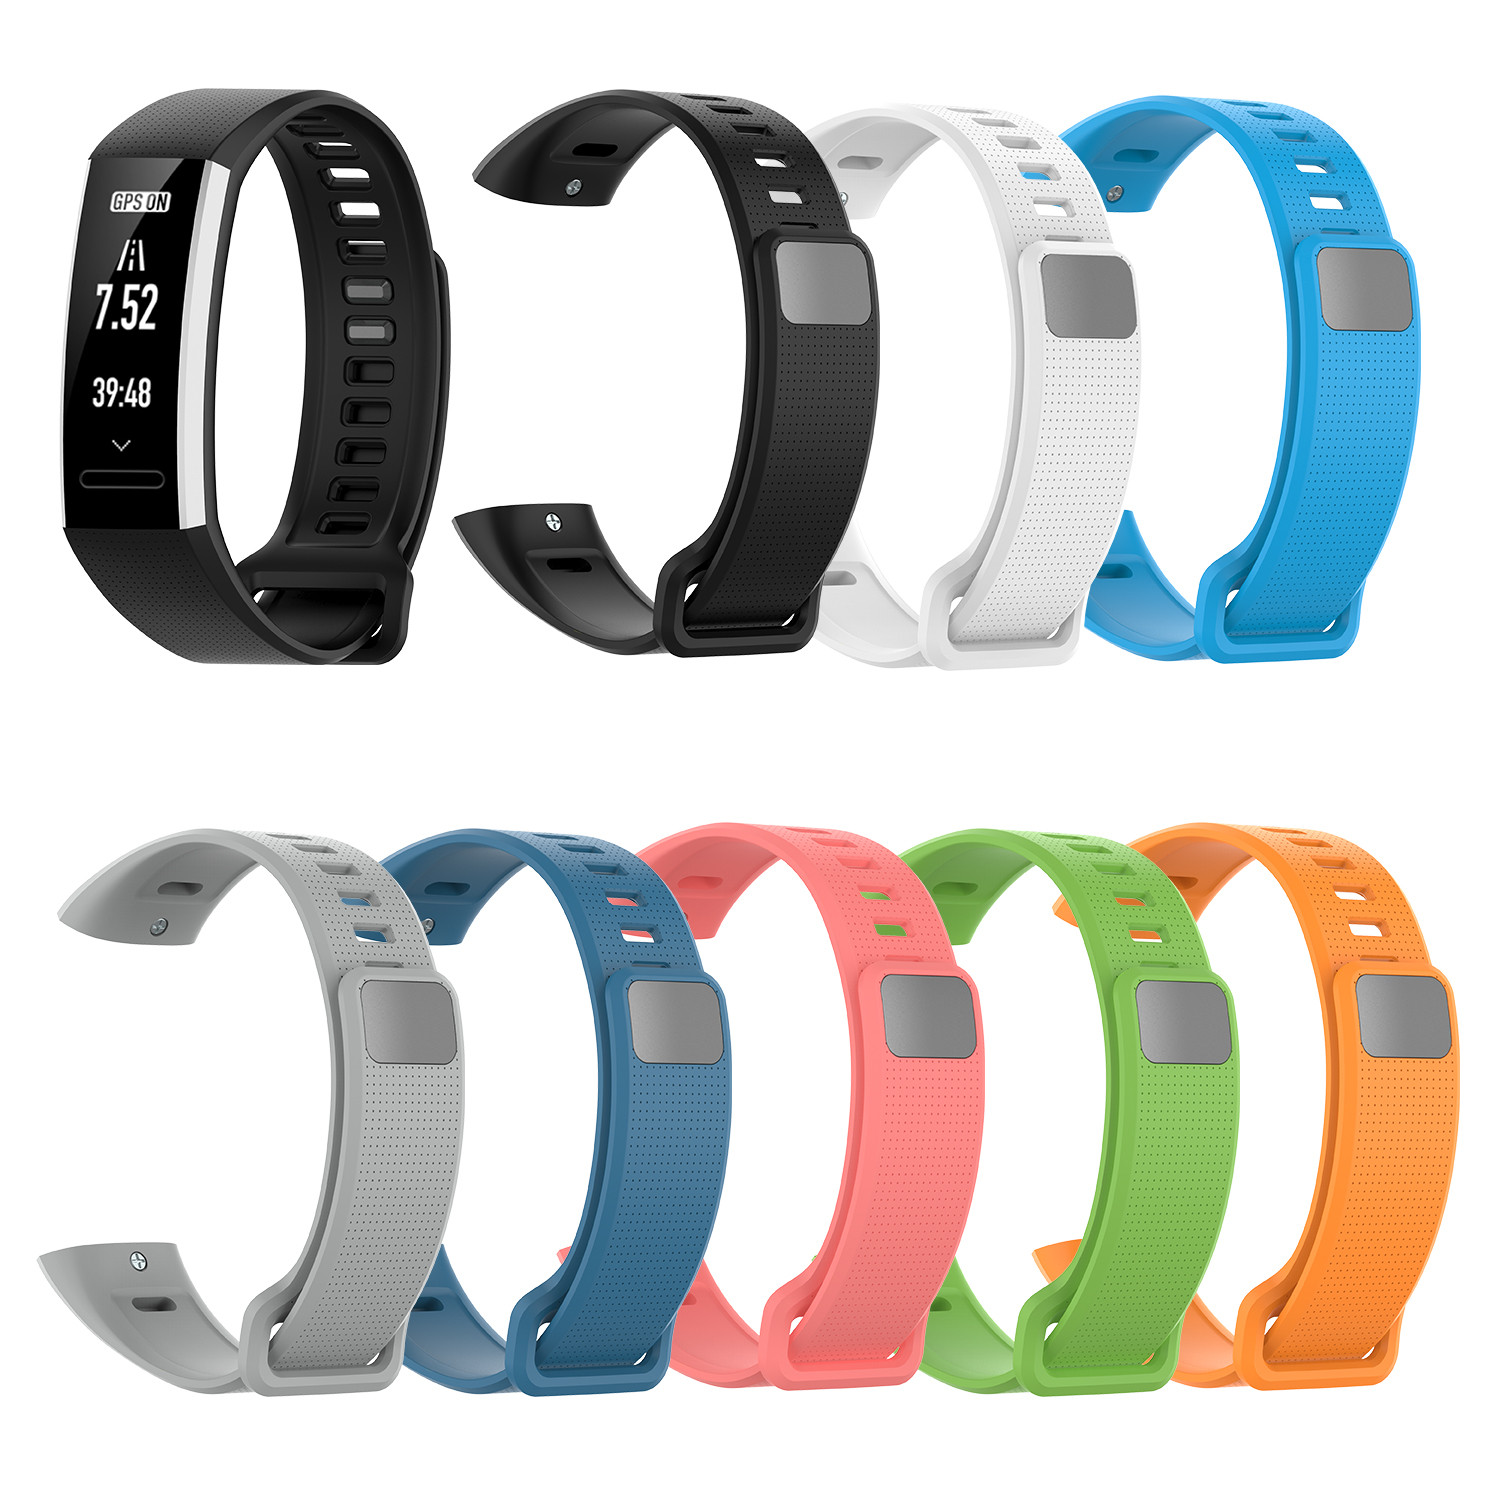 Silicone Replacement Band Wrist Strap For Huawei Band 2/Band 2 Pro Smart Watch For Huawei Band 2 B19/B29 Pro Strap Accessories